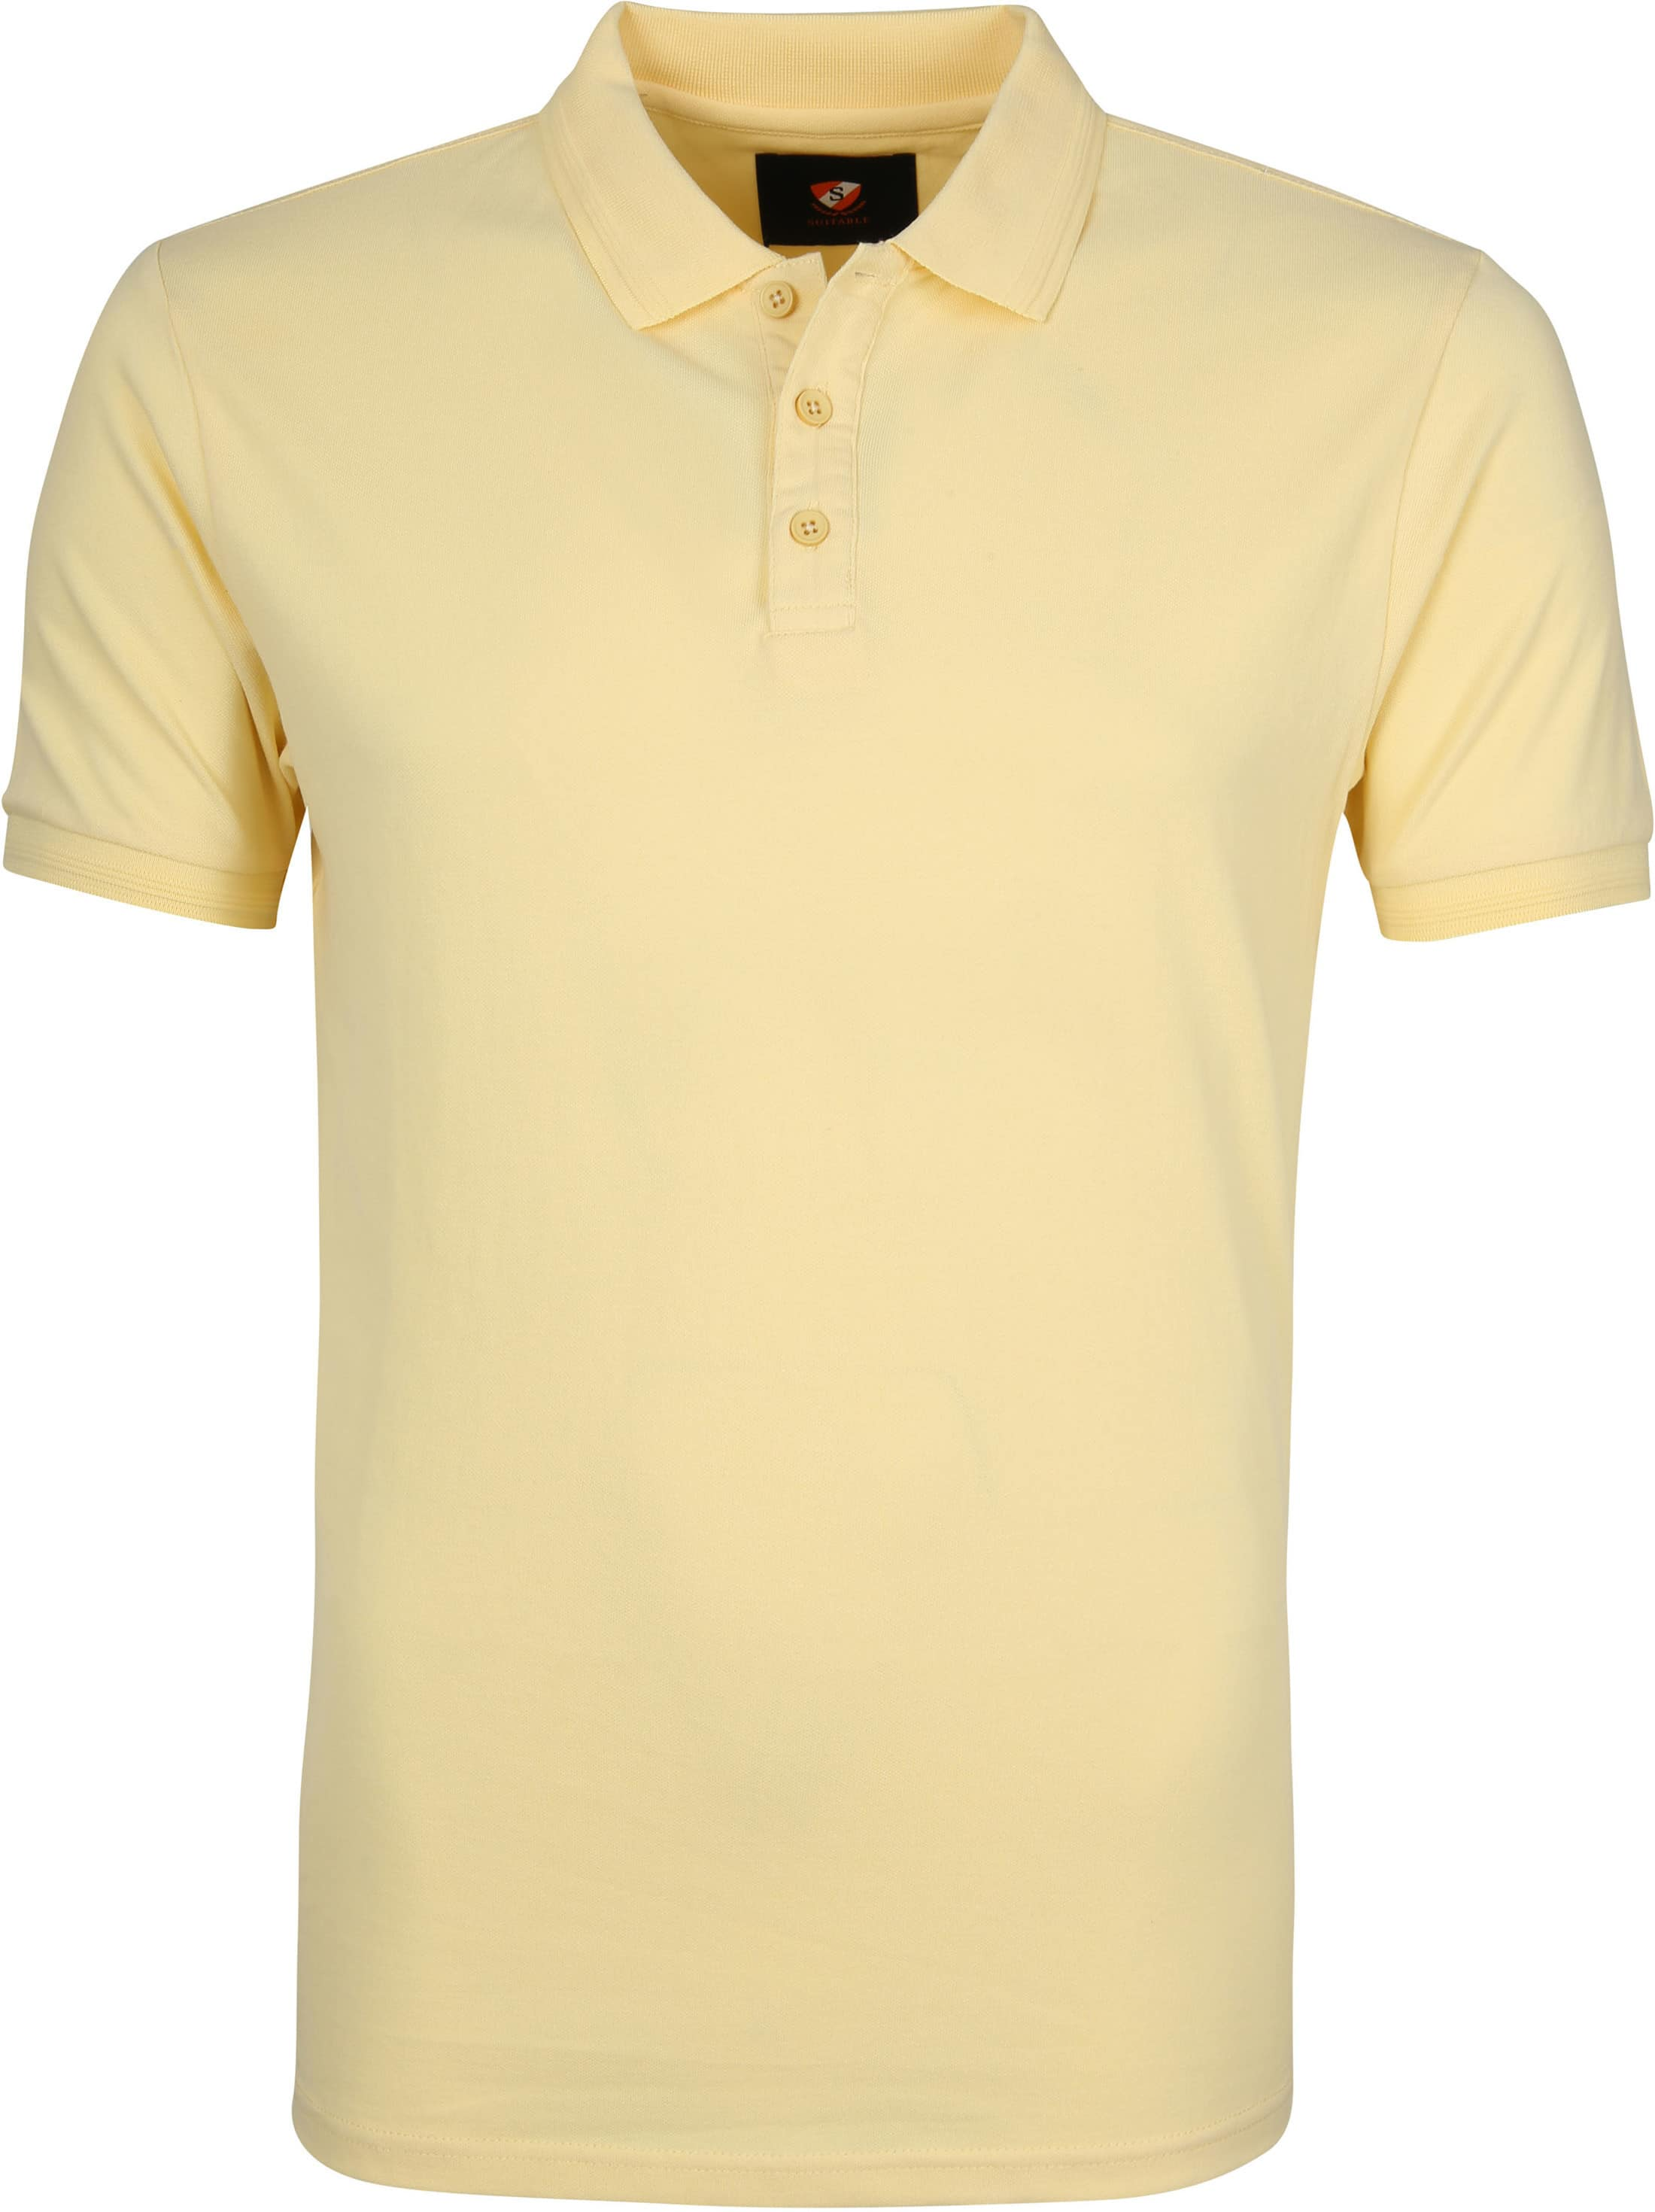 Suitable Oscar Polo Shirt Yellow